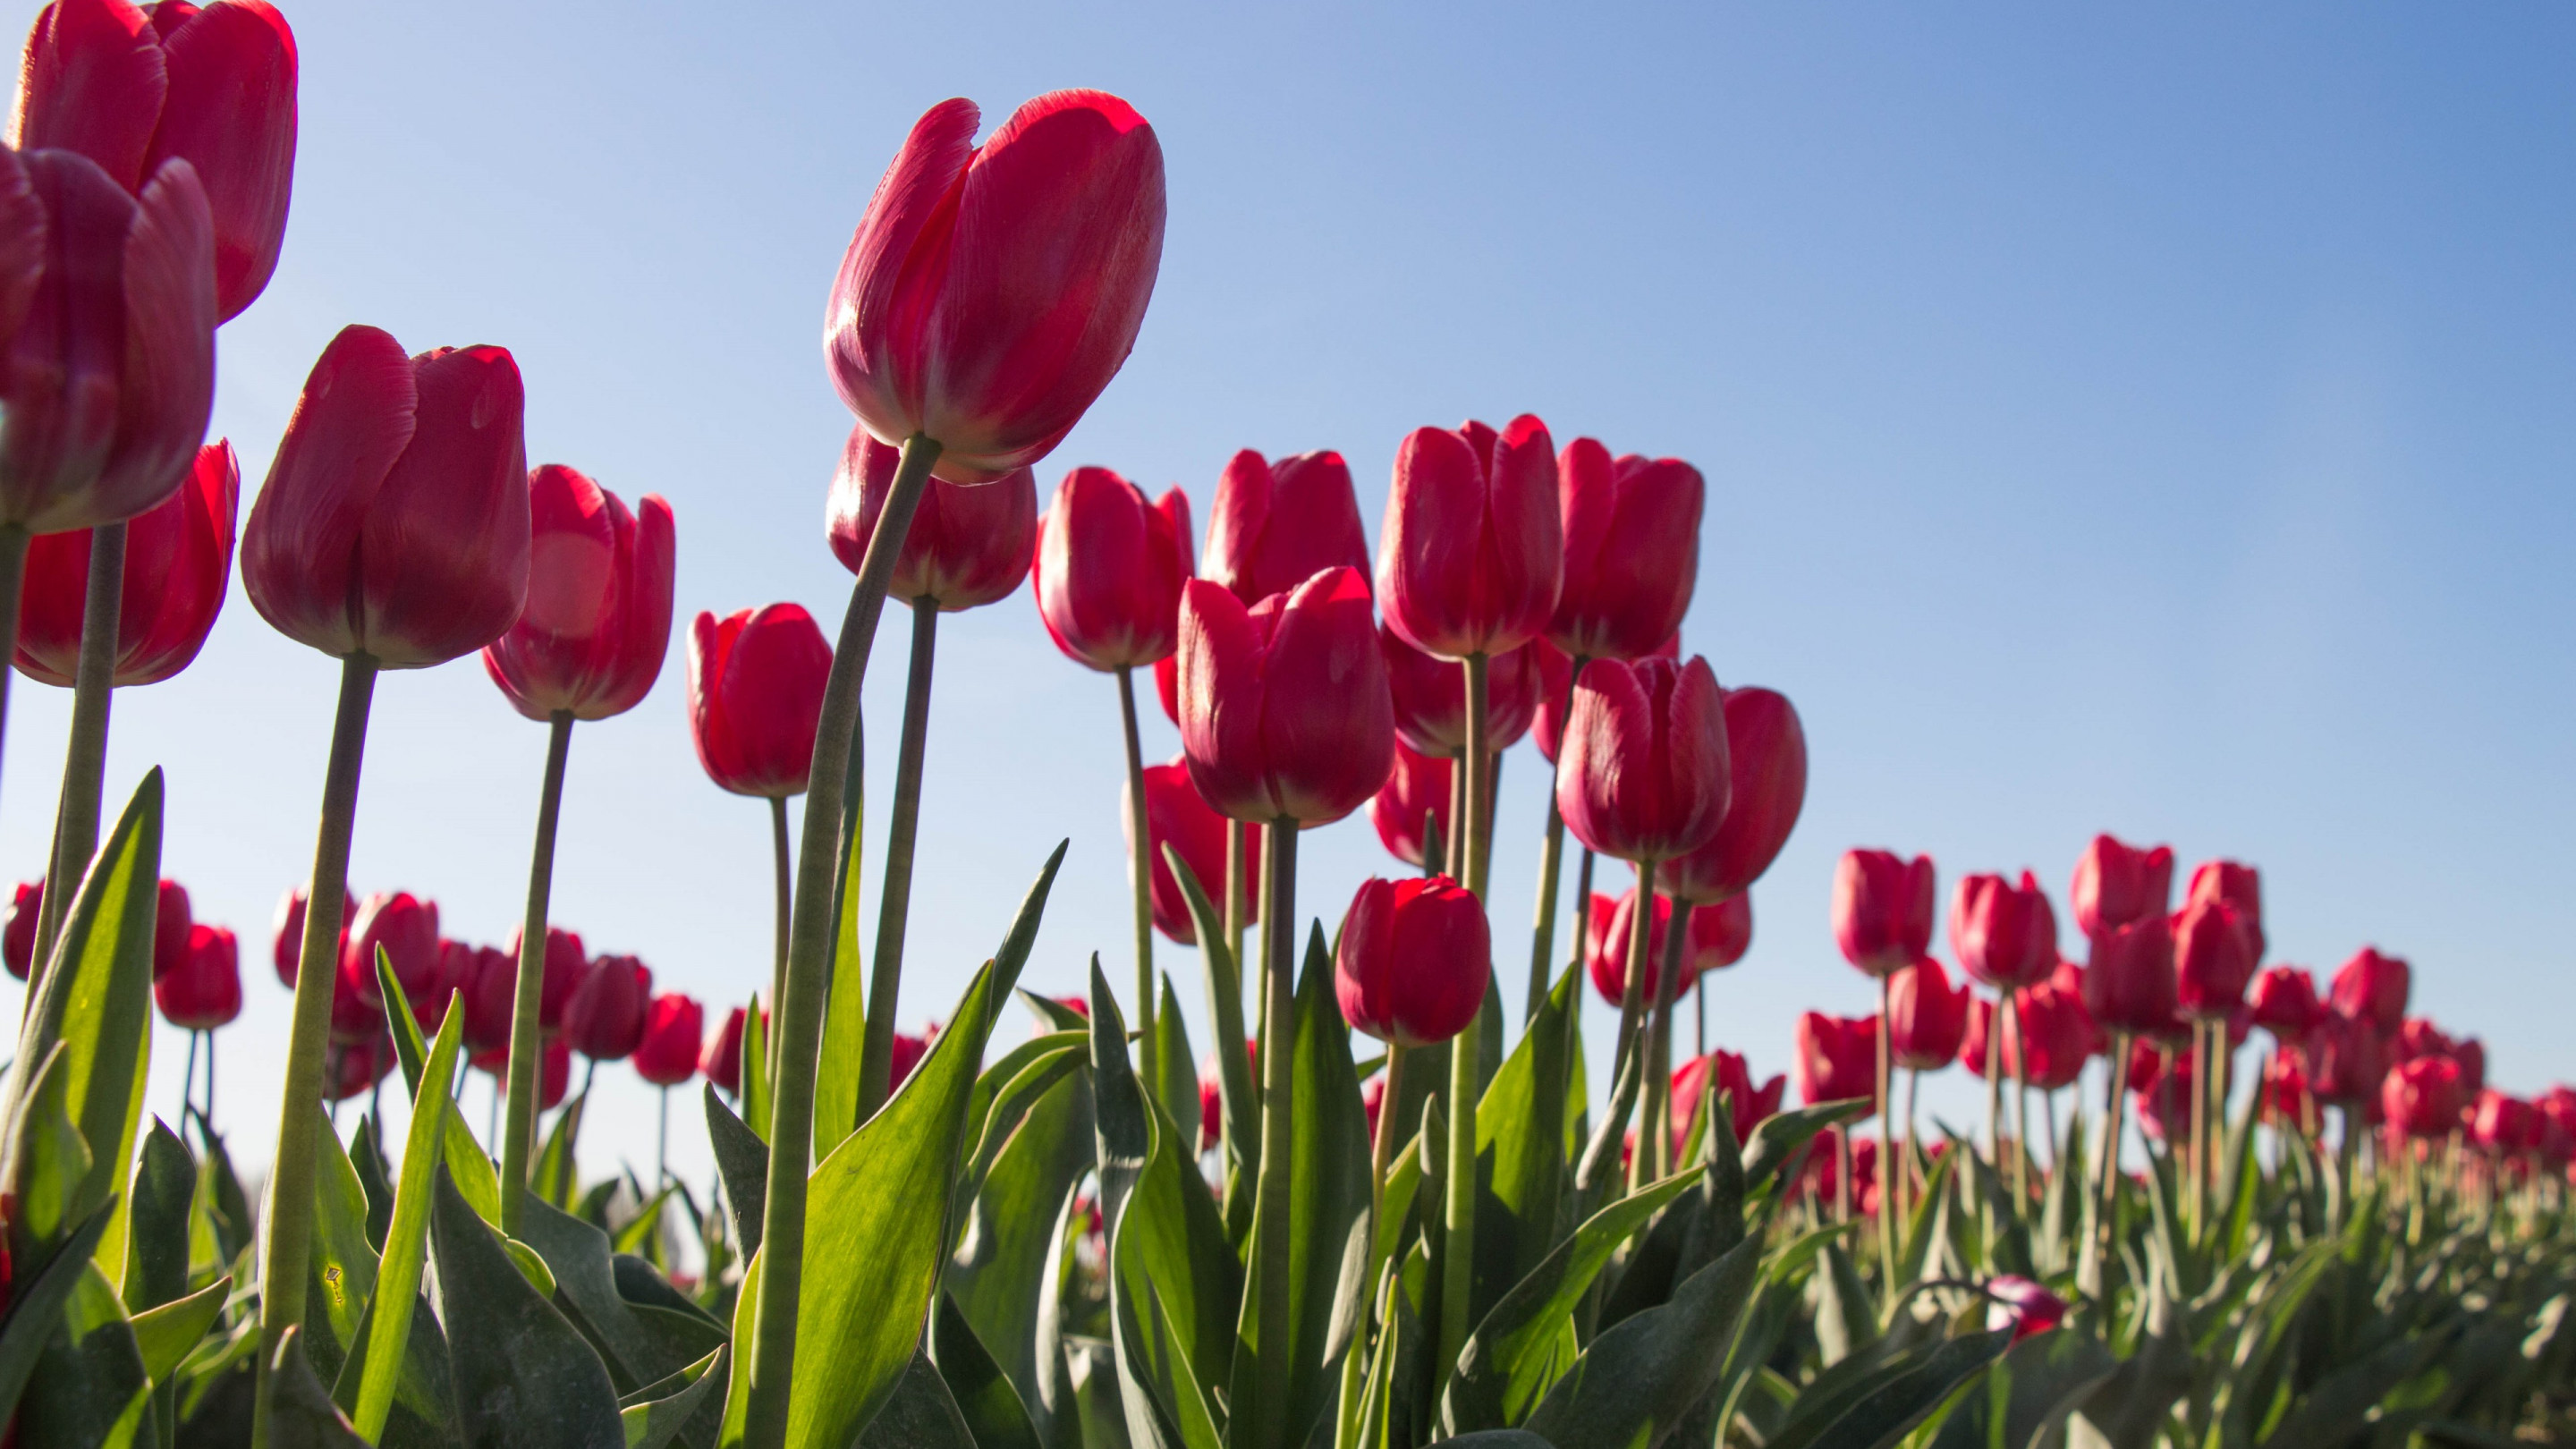 Red tulips wallpaper 2880x1620